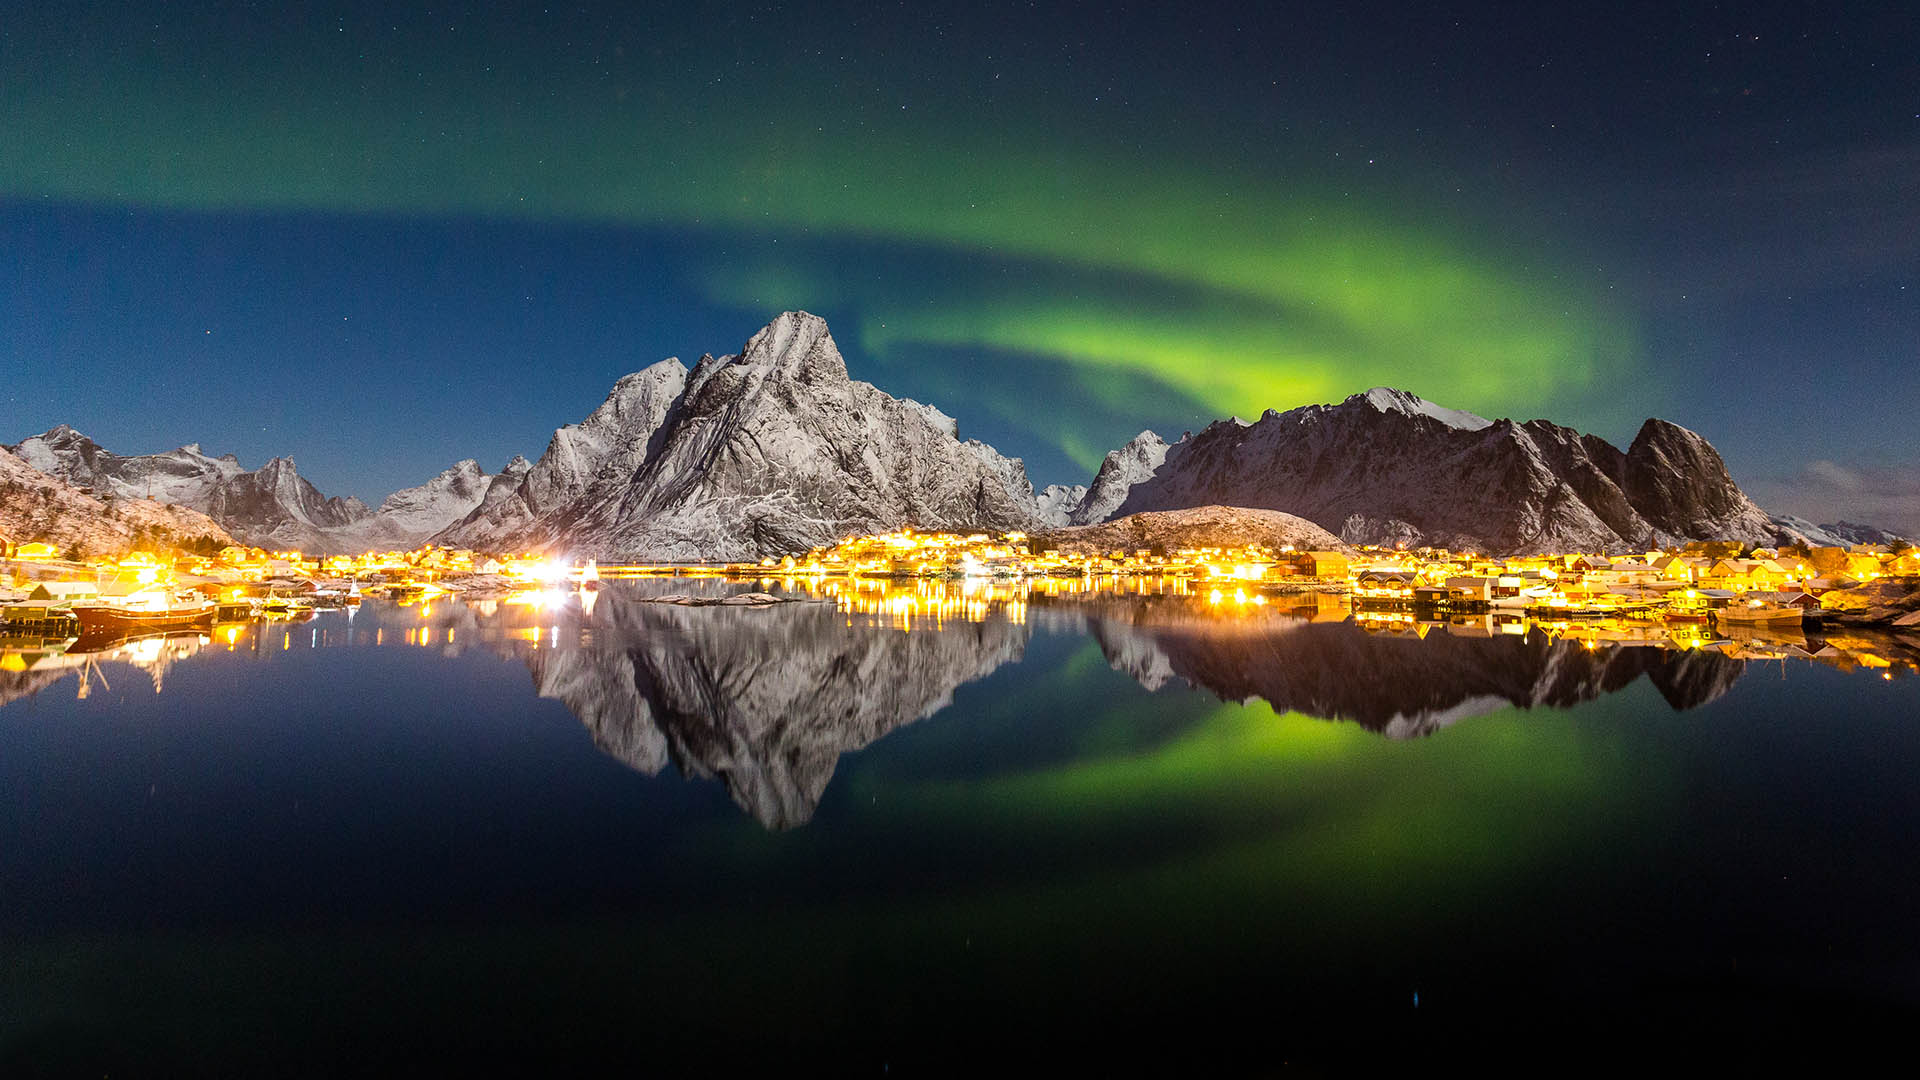 Northern lights over the Lofoten Islands, Norway